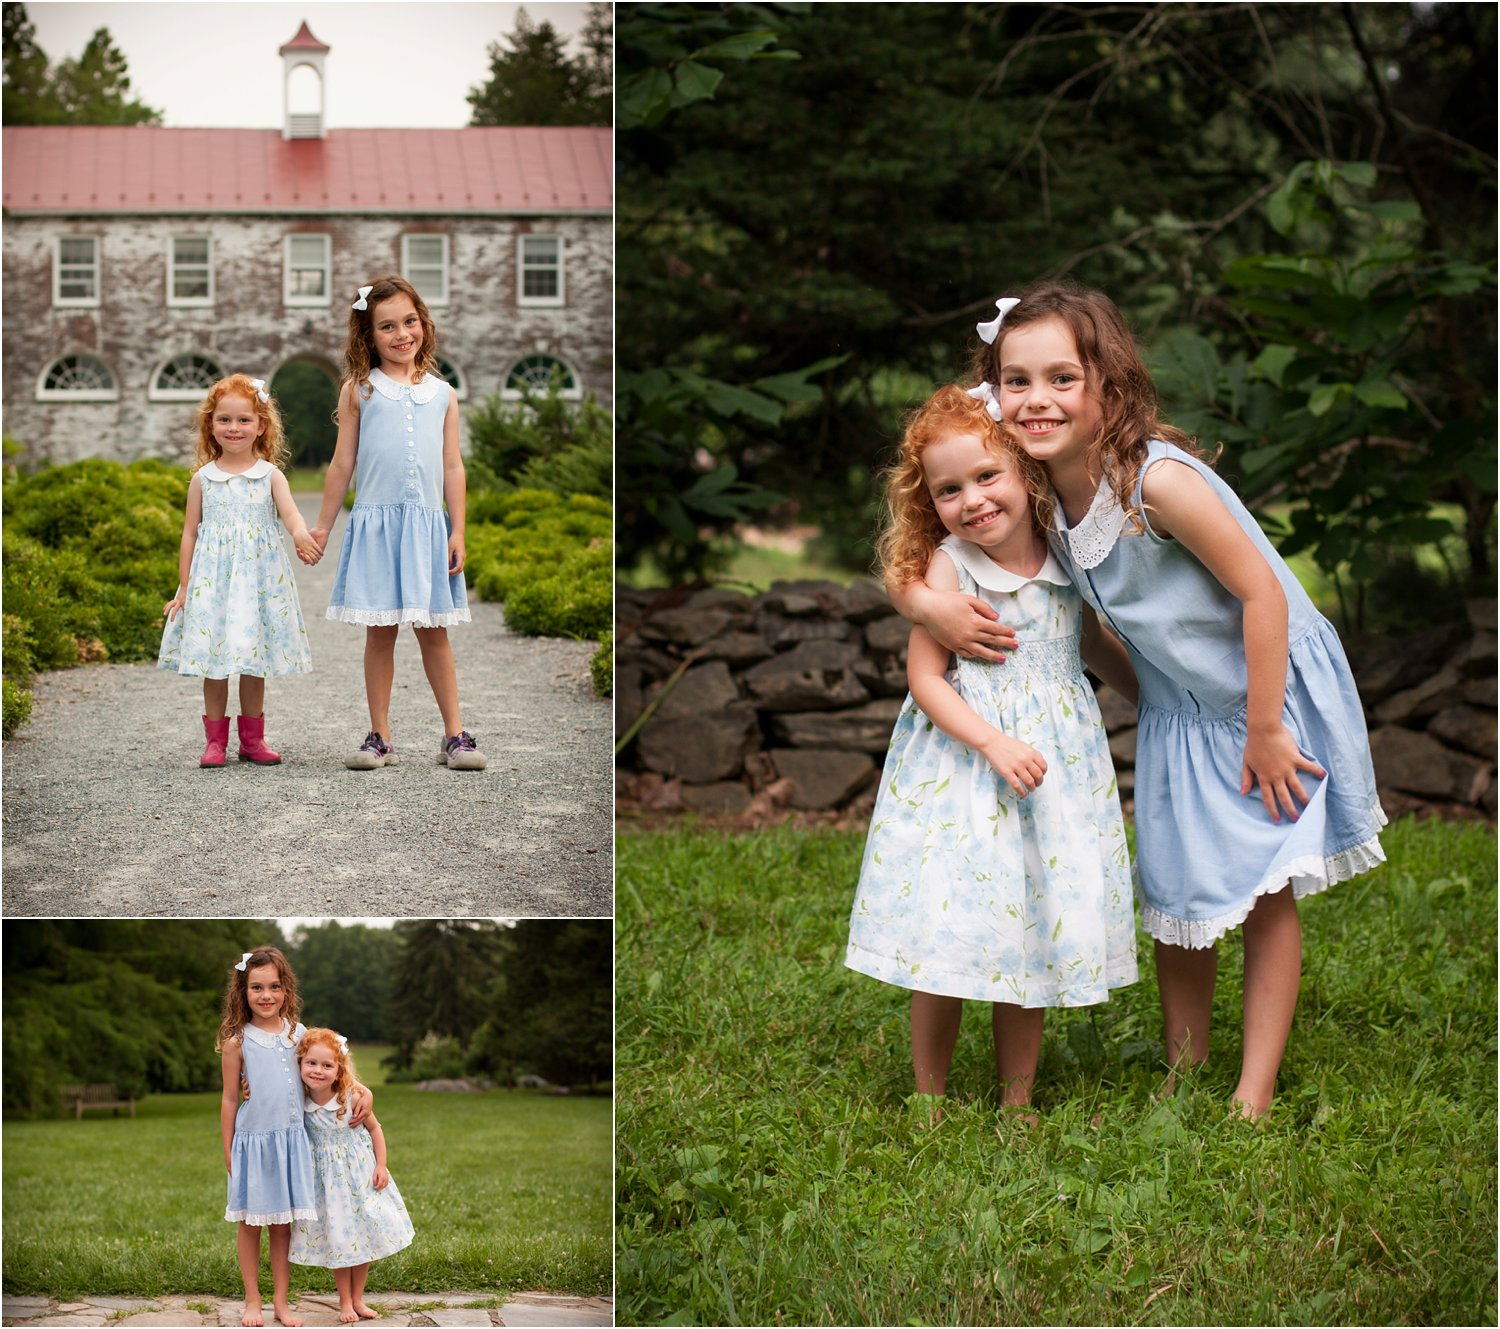 Blandy_Arboretum_Sibling_Mini_Sessions_Carpenters_0007.jpg